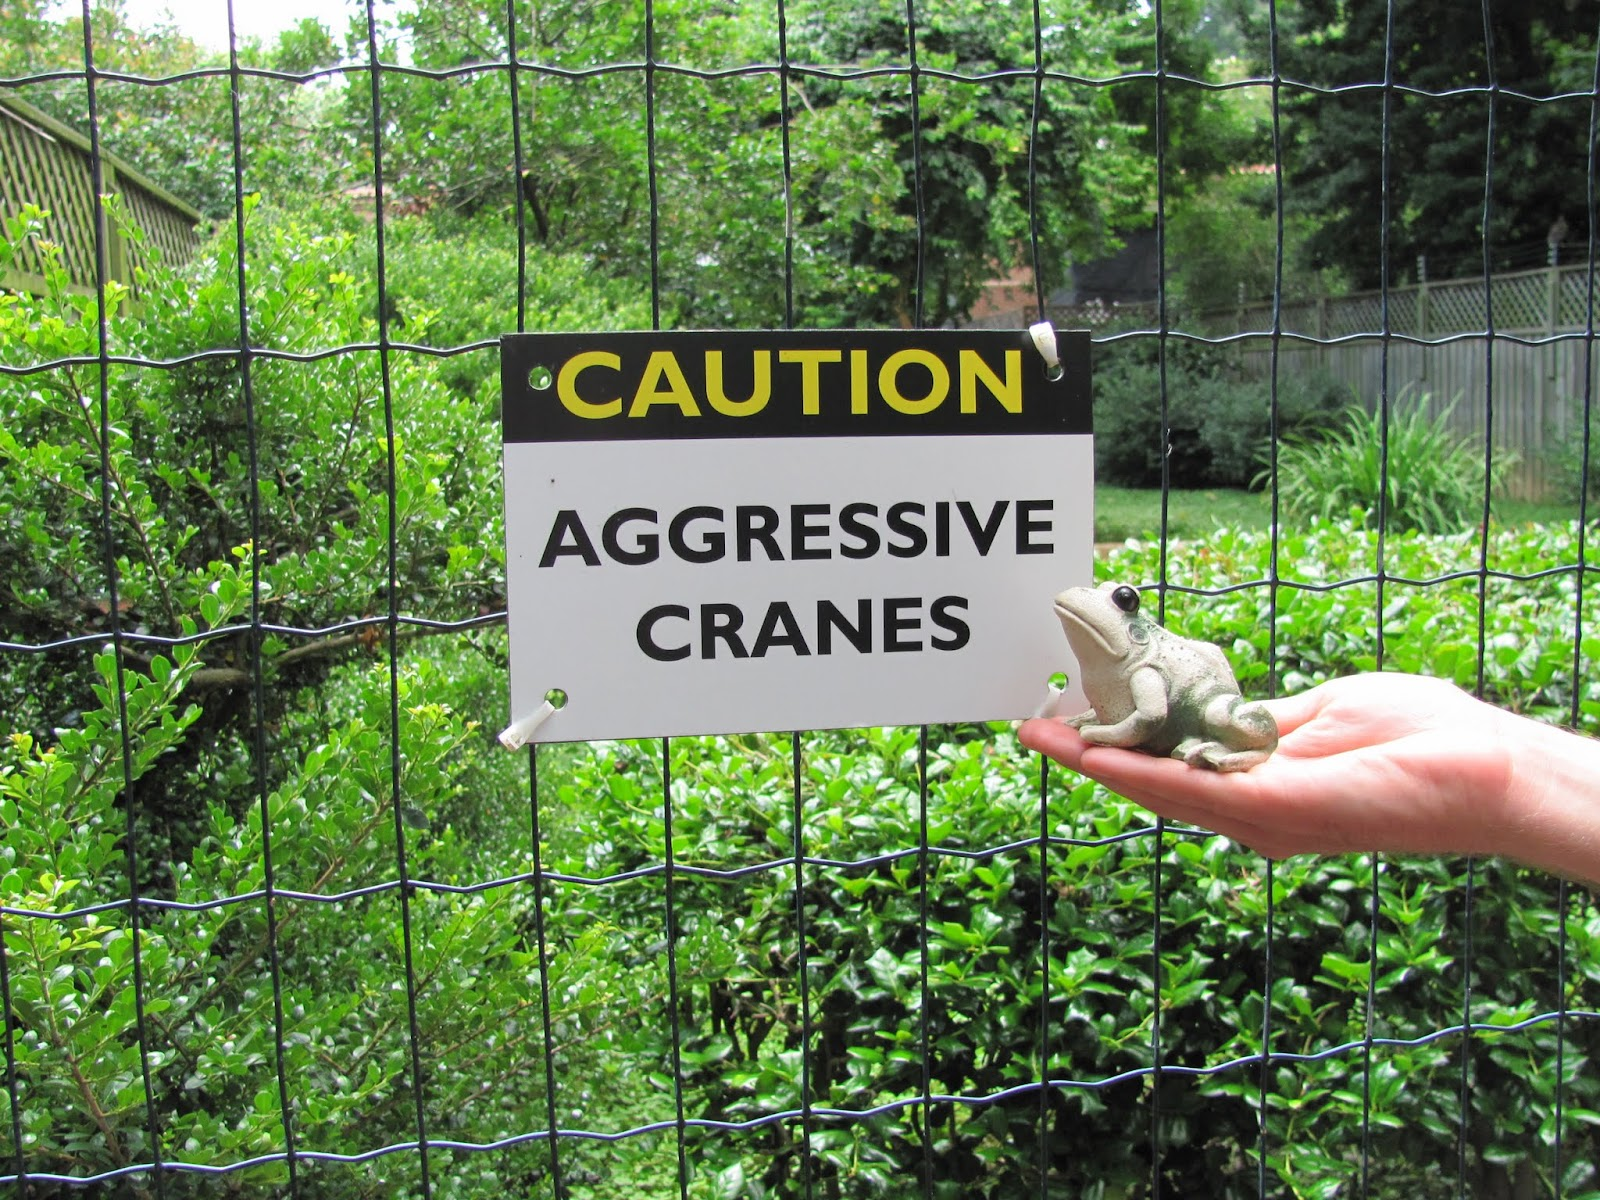 Frog reads a sign warning about aggressive cranes at the National Zoo in Washington, DC